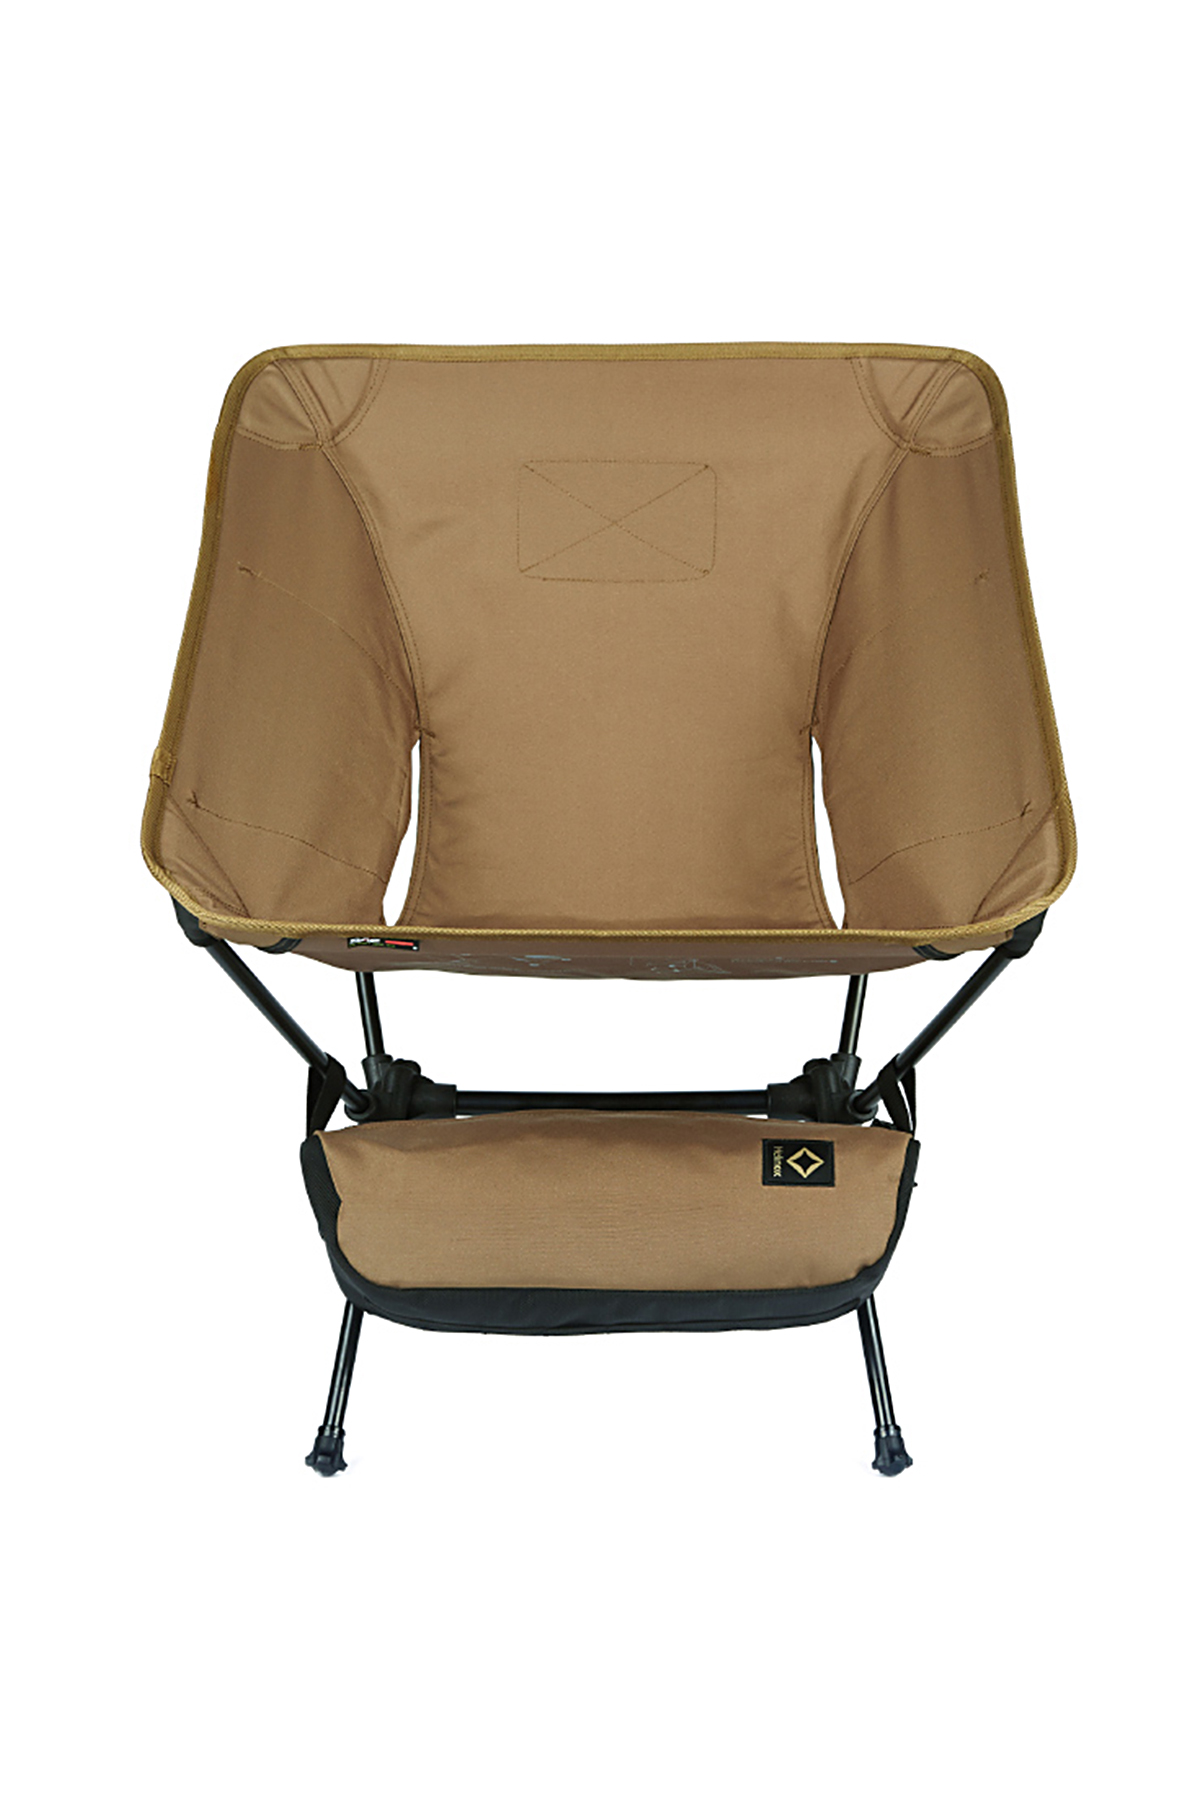 Helinox : Tactical Chair (Coyote Tan)